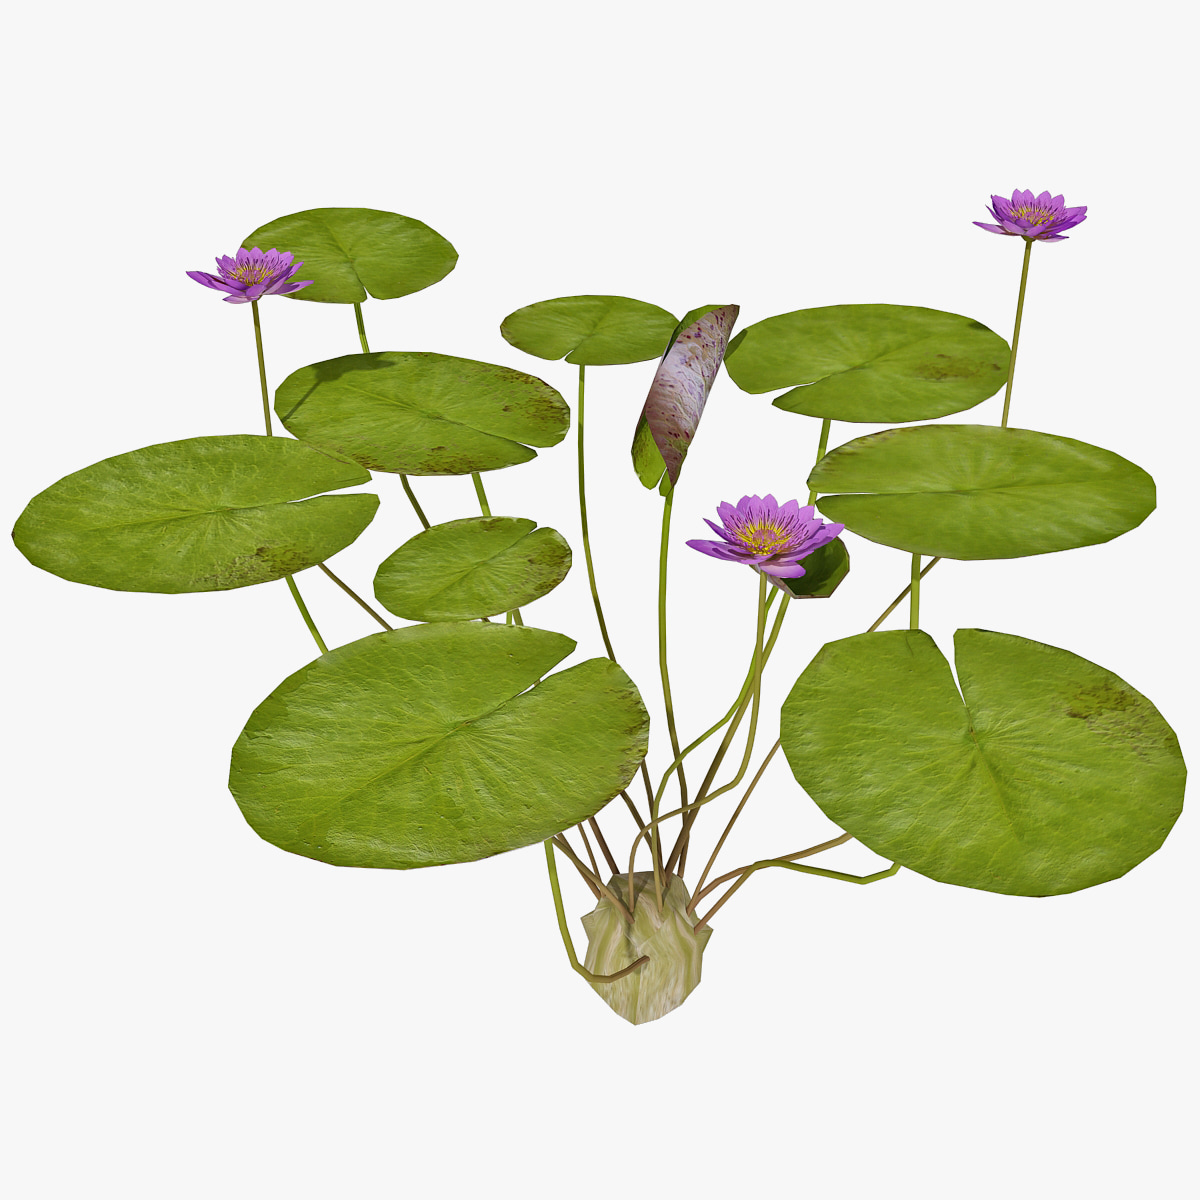 146304_Water_Lily_2_000.jpg